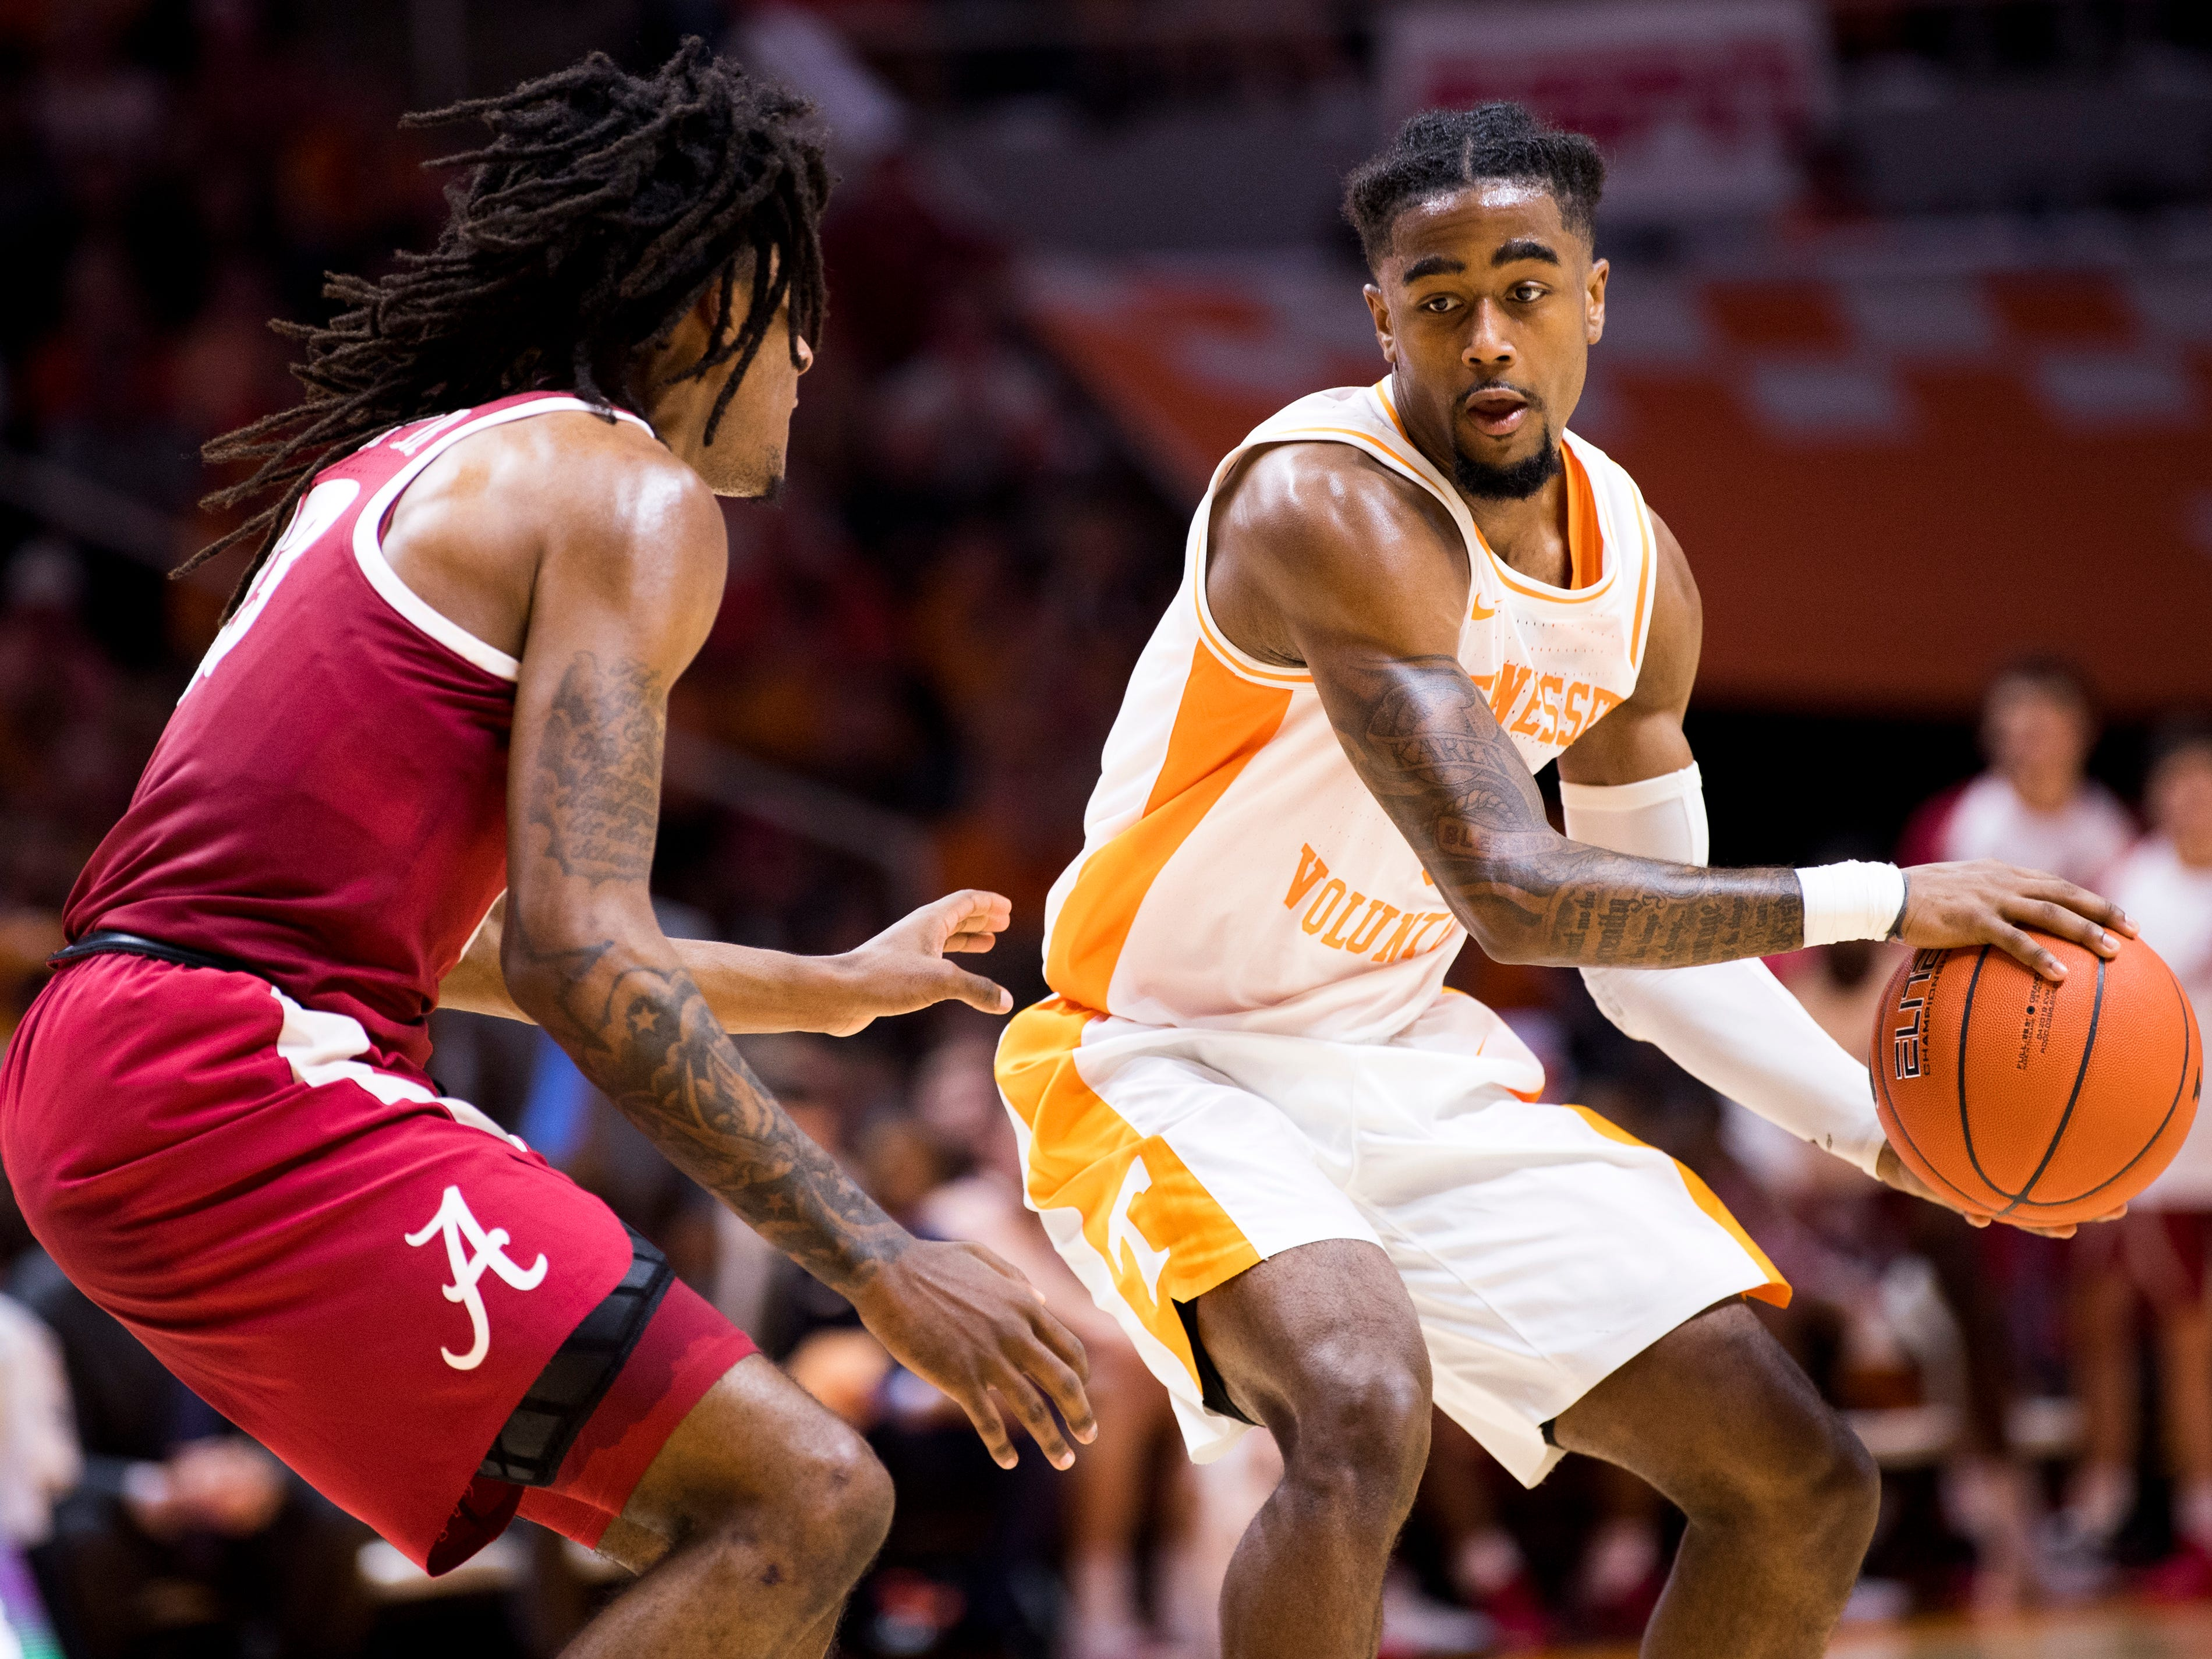 Tennessee guard Jordan Bone (0) moves down court during the second half of Tennessee's home SEC conference game against Alabama at Thompson-Boling Arena in Knoxville on Saturday, January 19, 2019.